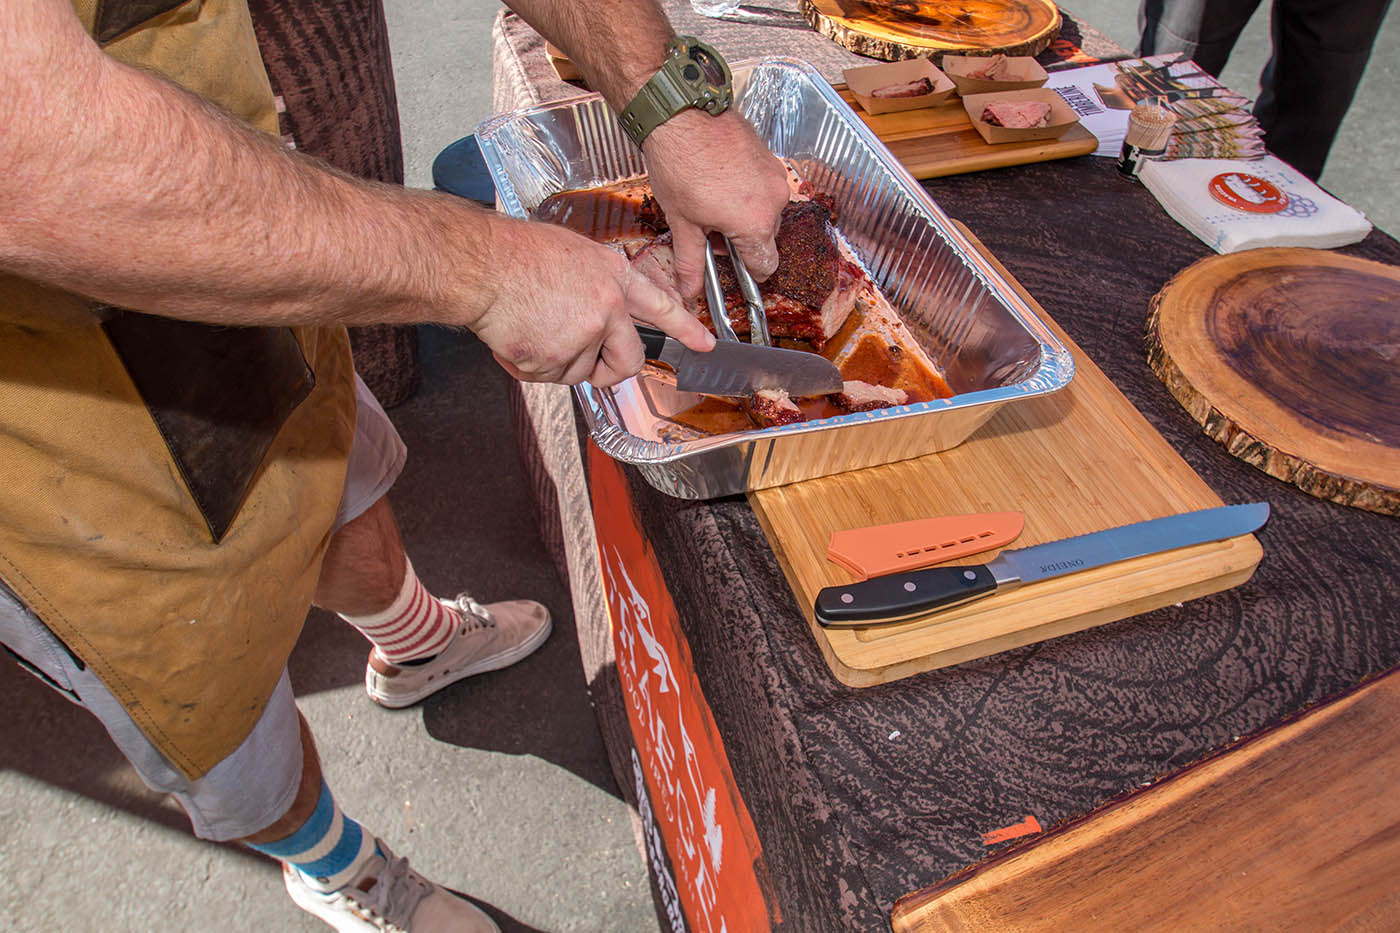 Traeger Wood Pellet Grill Demo Day Event Coverage Photos ...